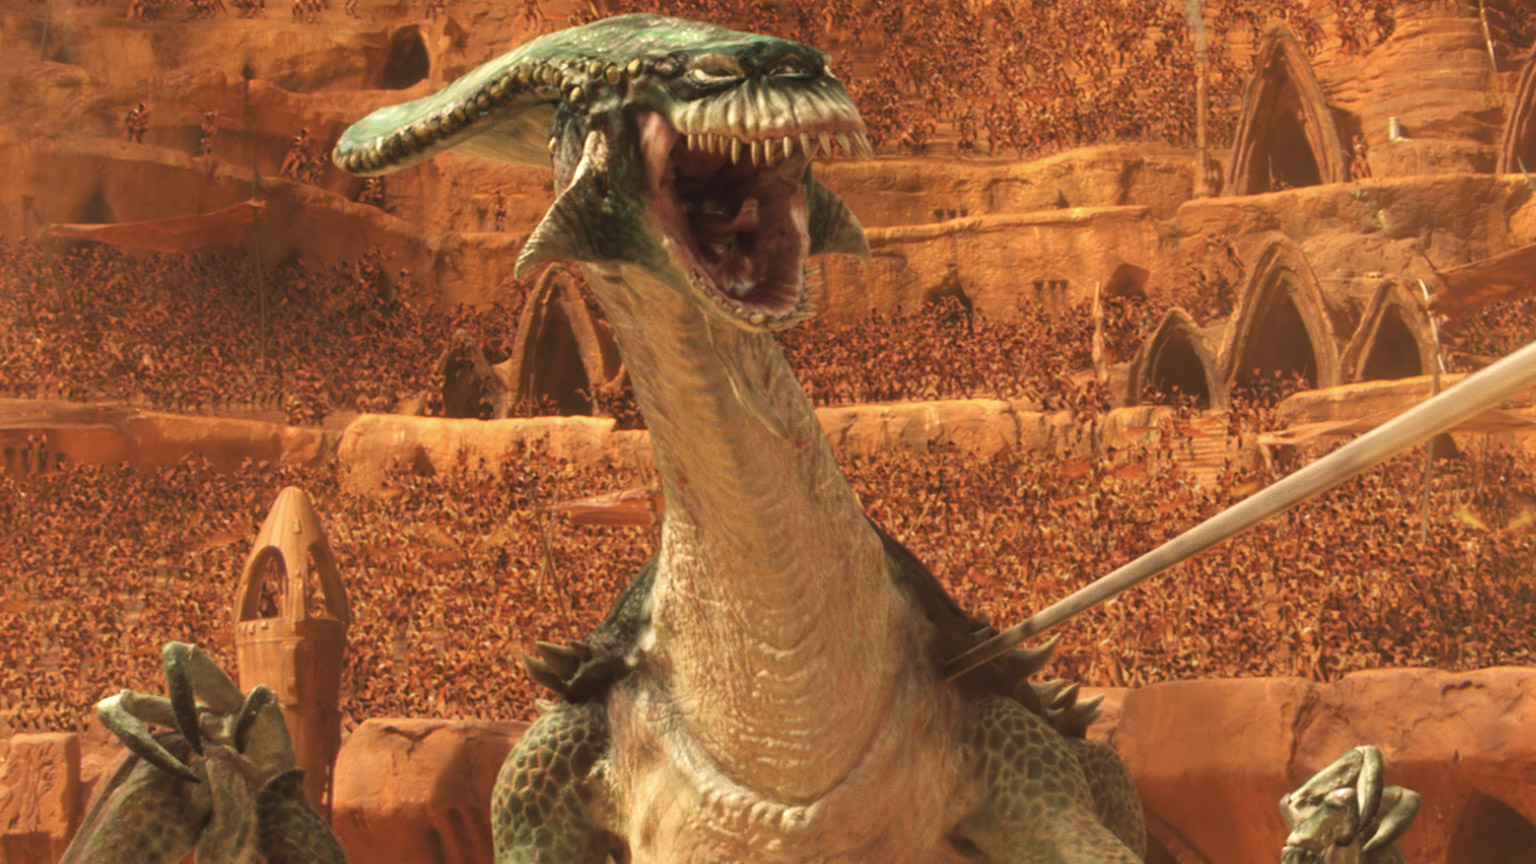 The Acklay attacks in Attack of the Clones.